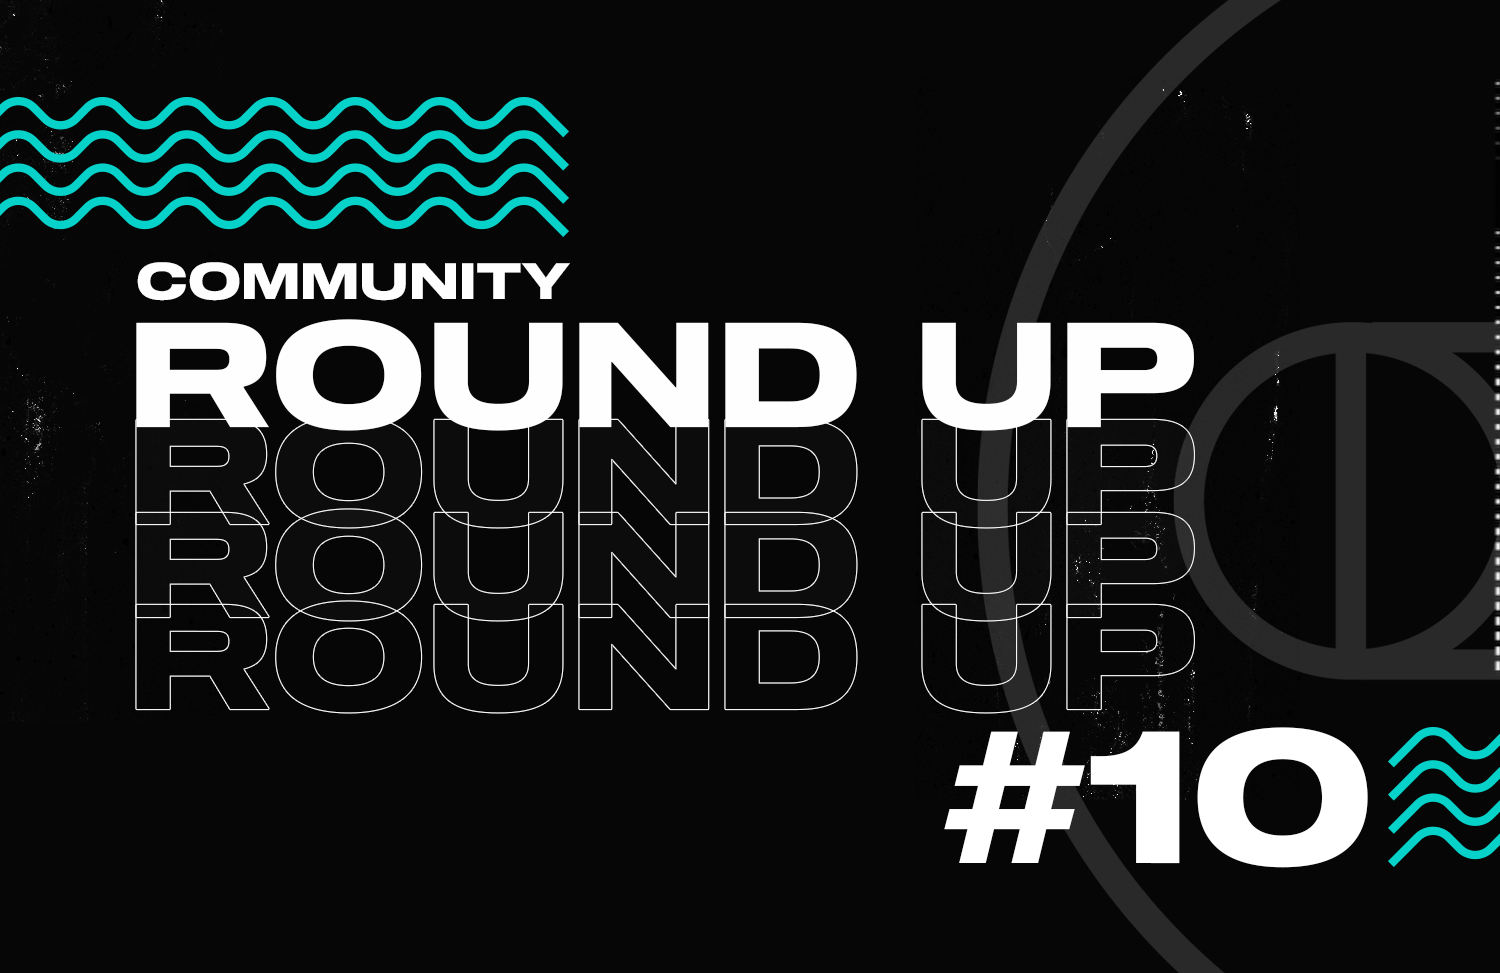 Welcome to another edition of our Community Roundup...